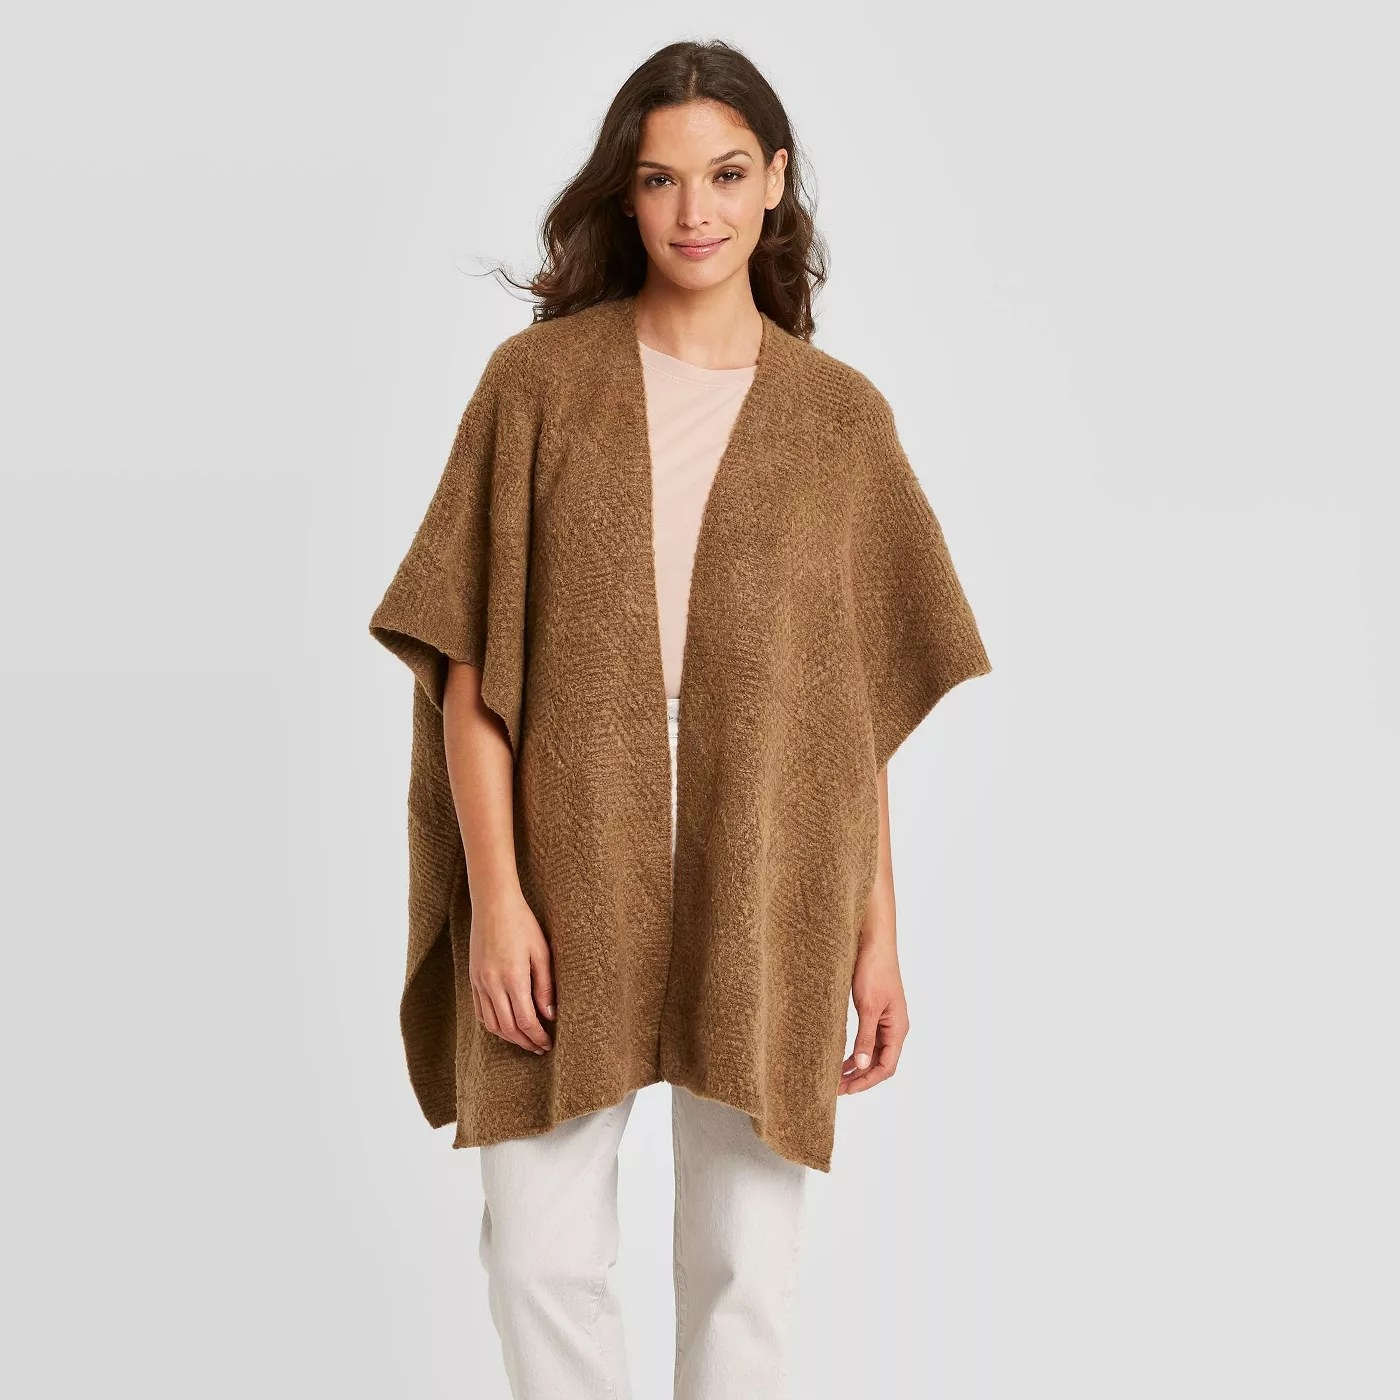 A fuzzy camel colored kimono  paired with basic khaki pants and a white shirt.